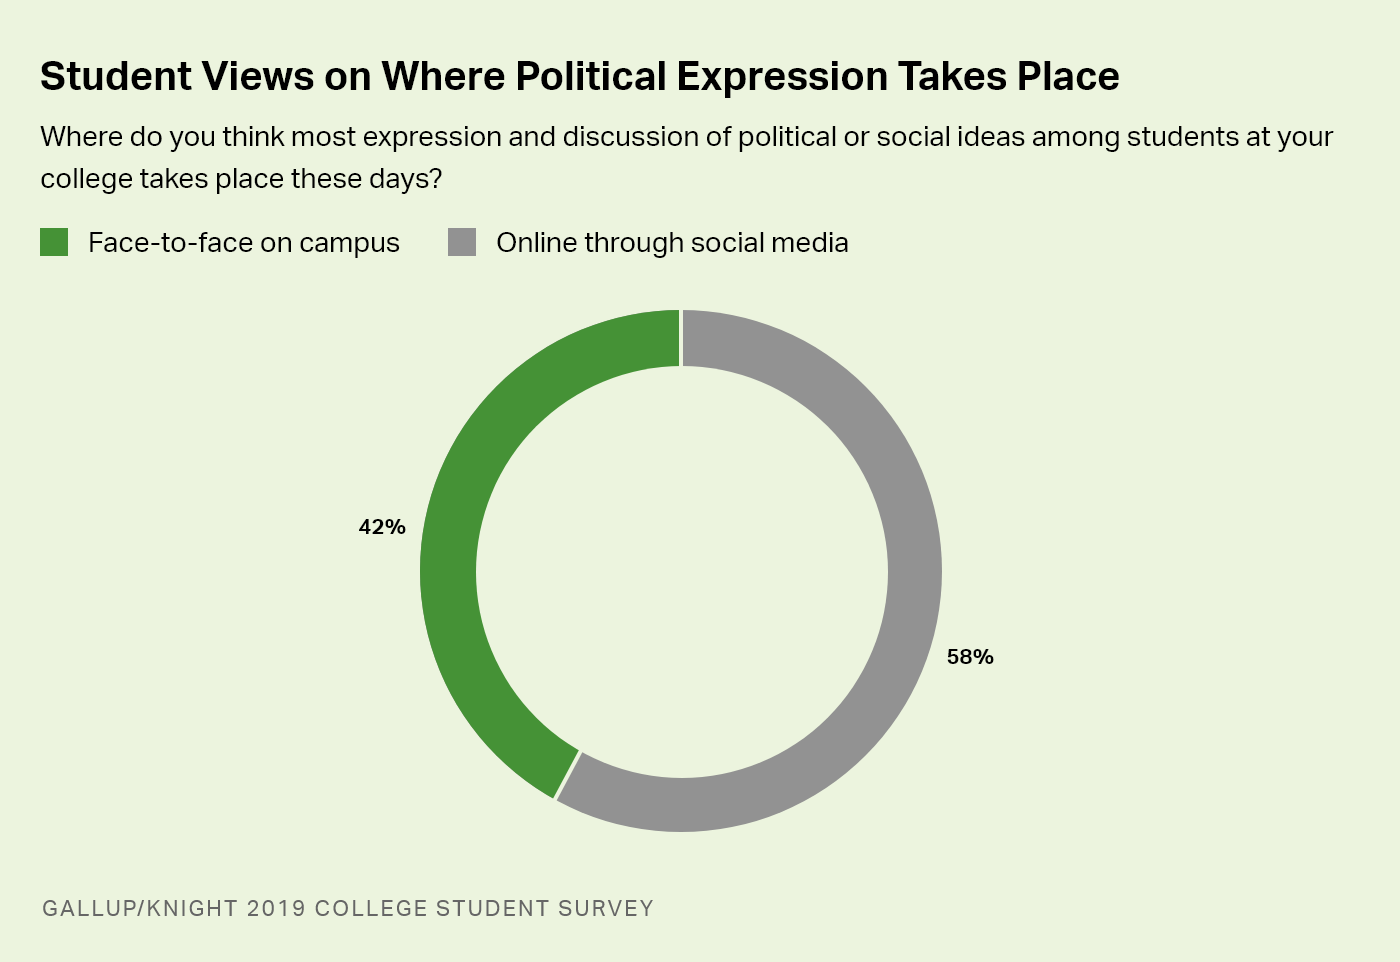 Donut chart. Fifty-eight percent of U.S. college students say most expression of political/social ideas on campus is online.